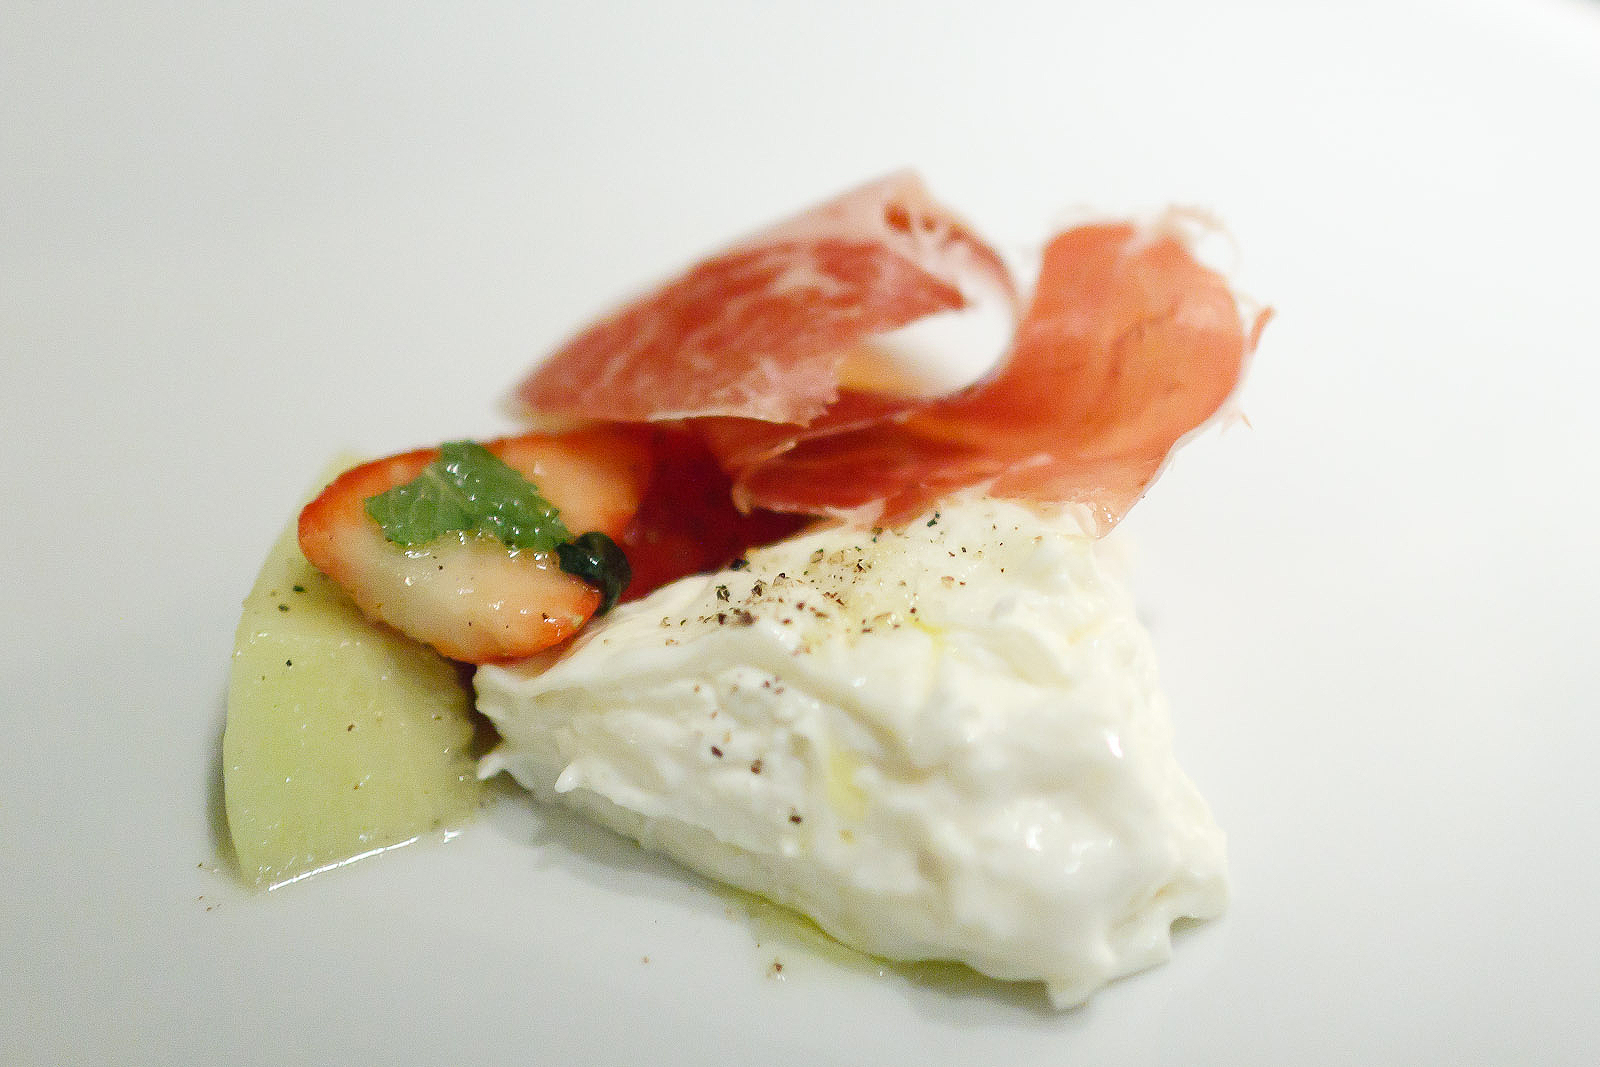 New York Grill, Tokyo - Cured Meat and Ricotta